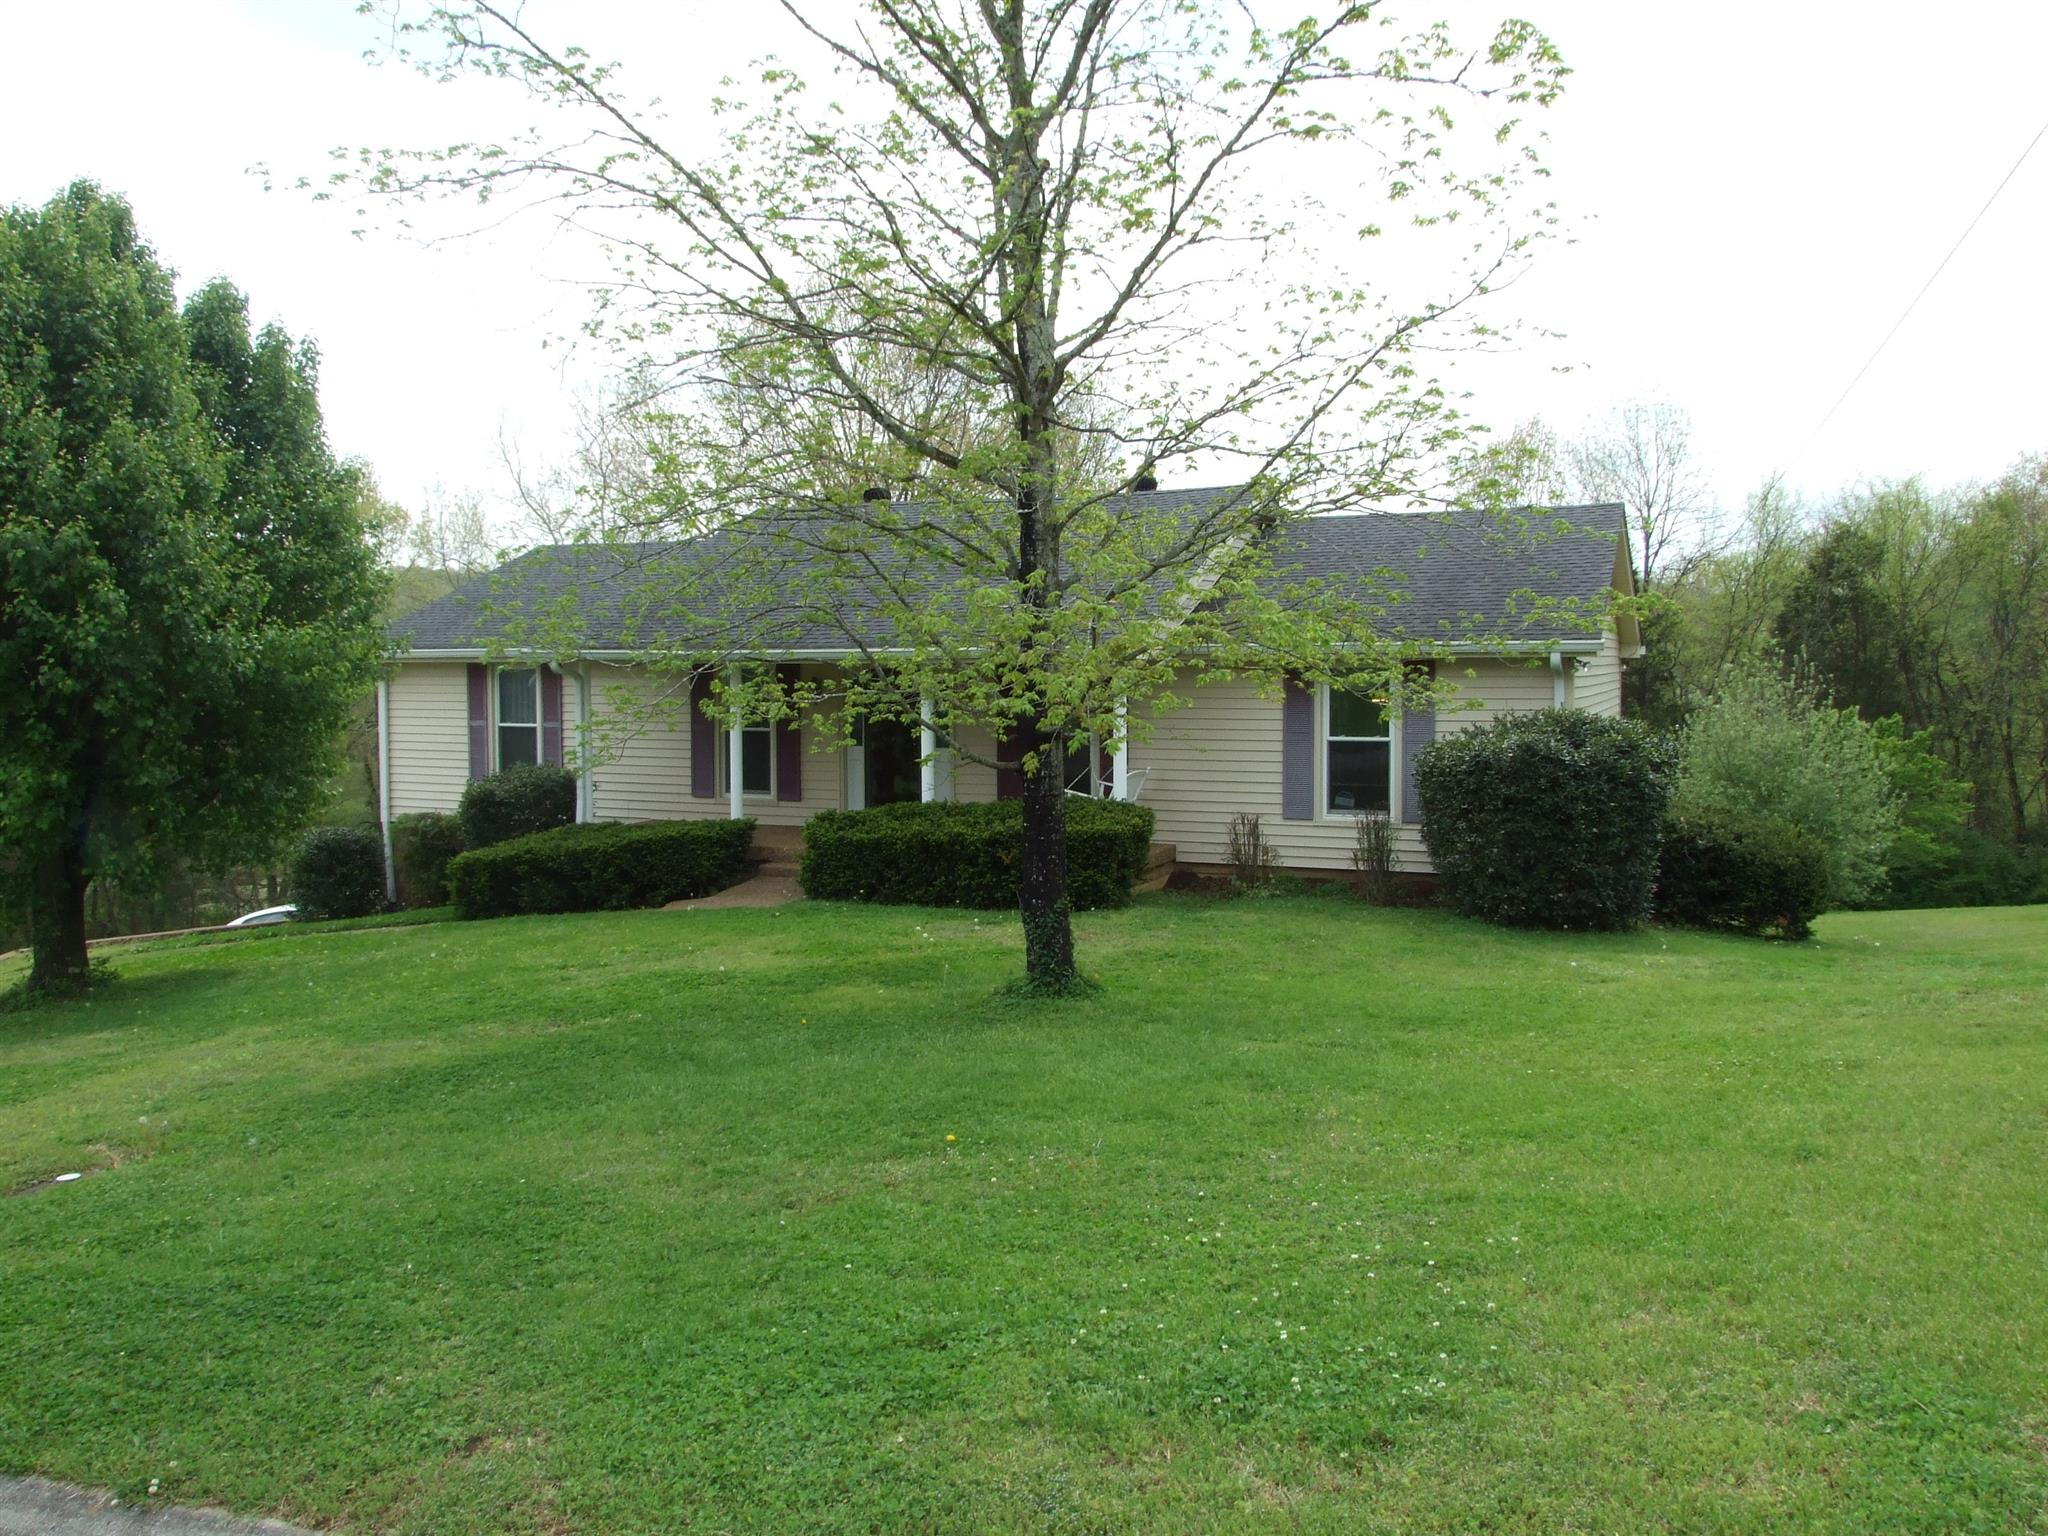 220 Charleston Dr, Goodlettsville in Davidson County County, TN 37072 Home for Sale